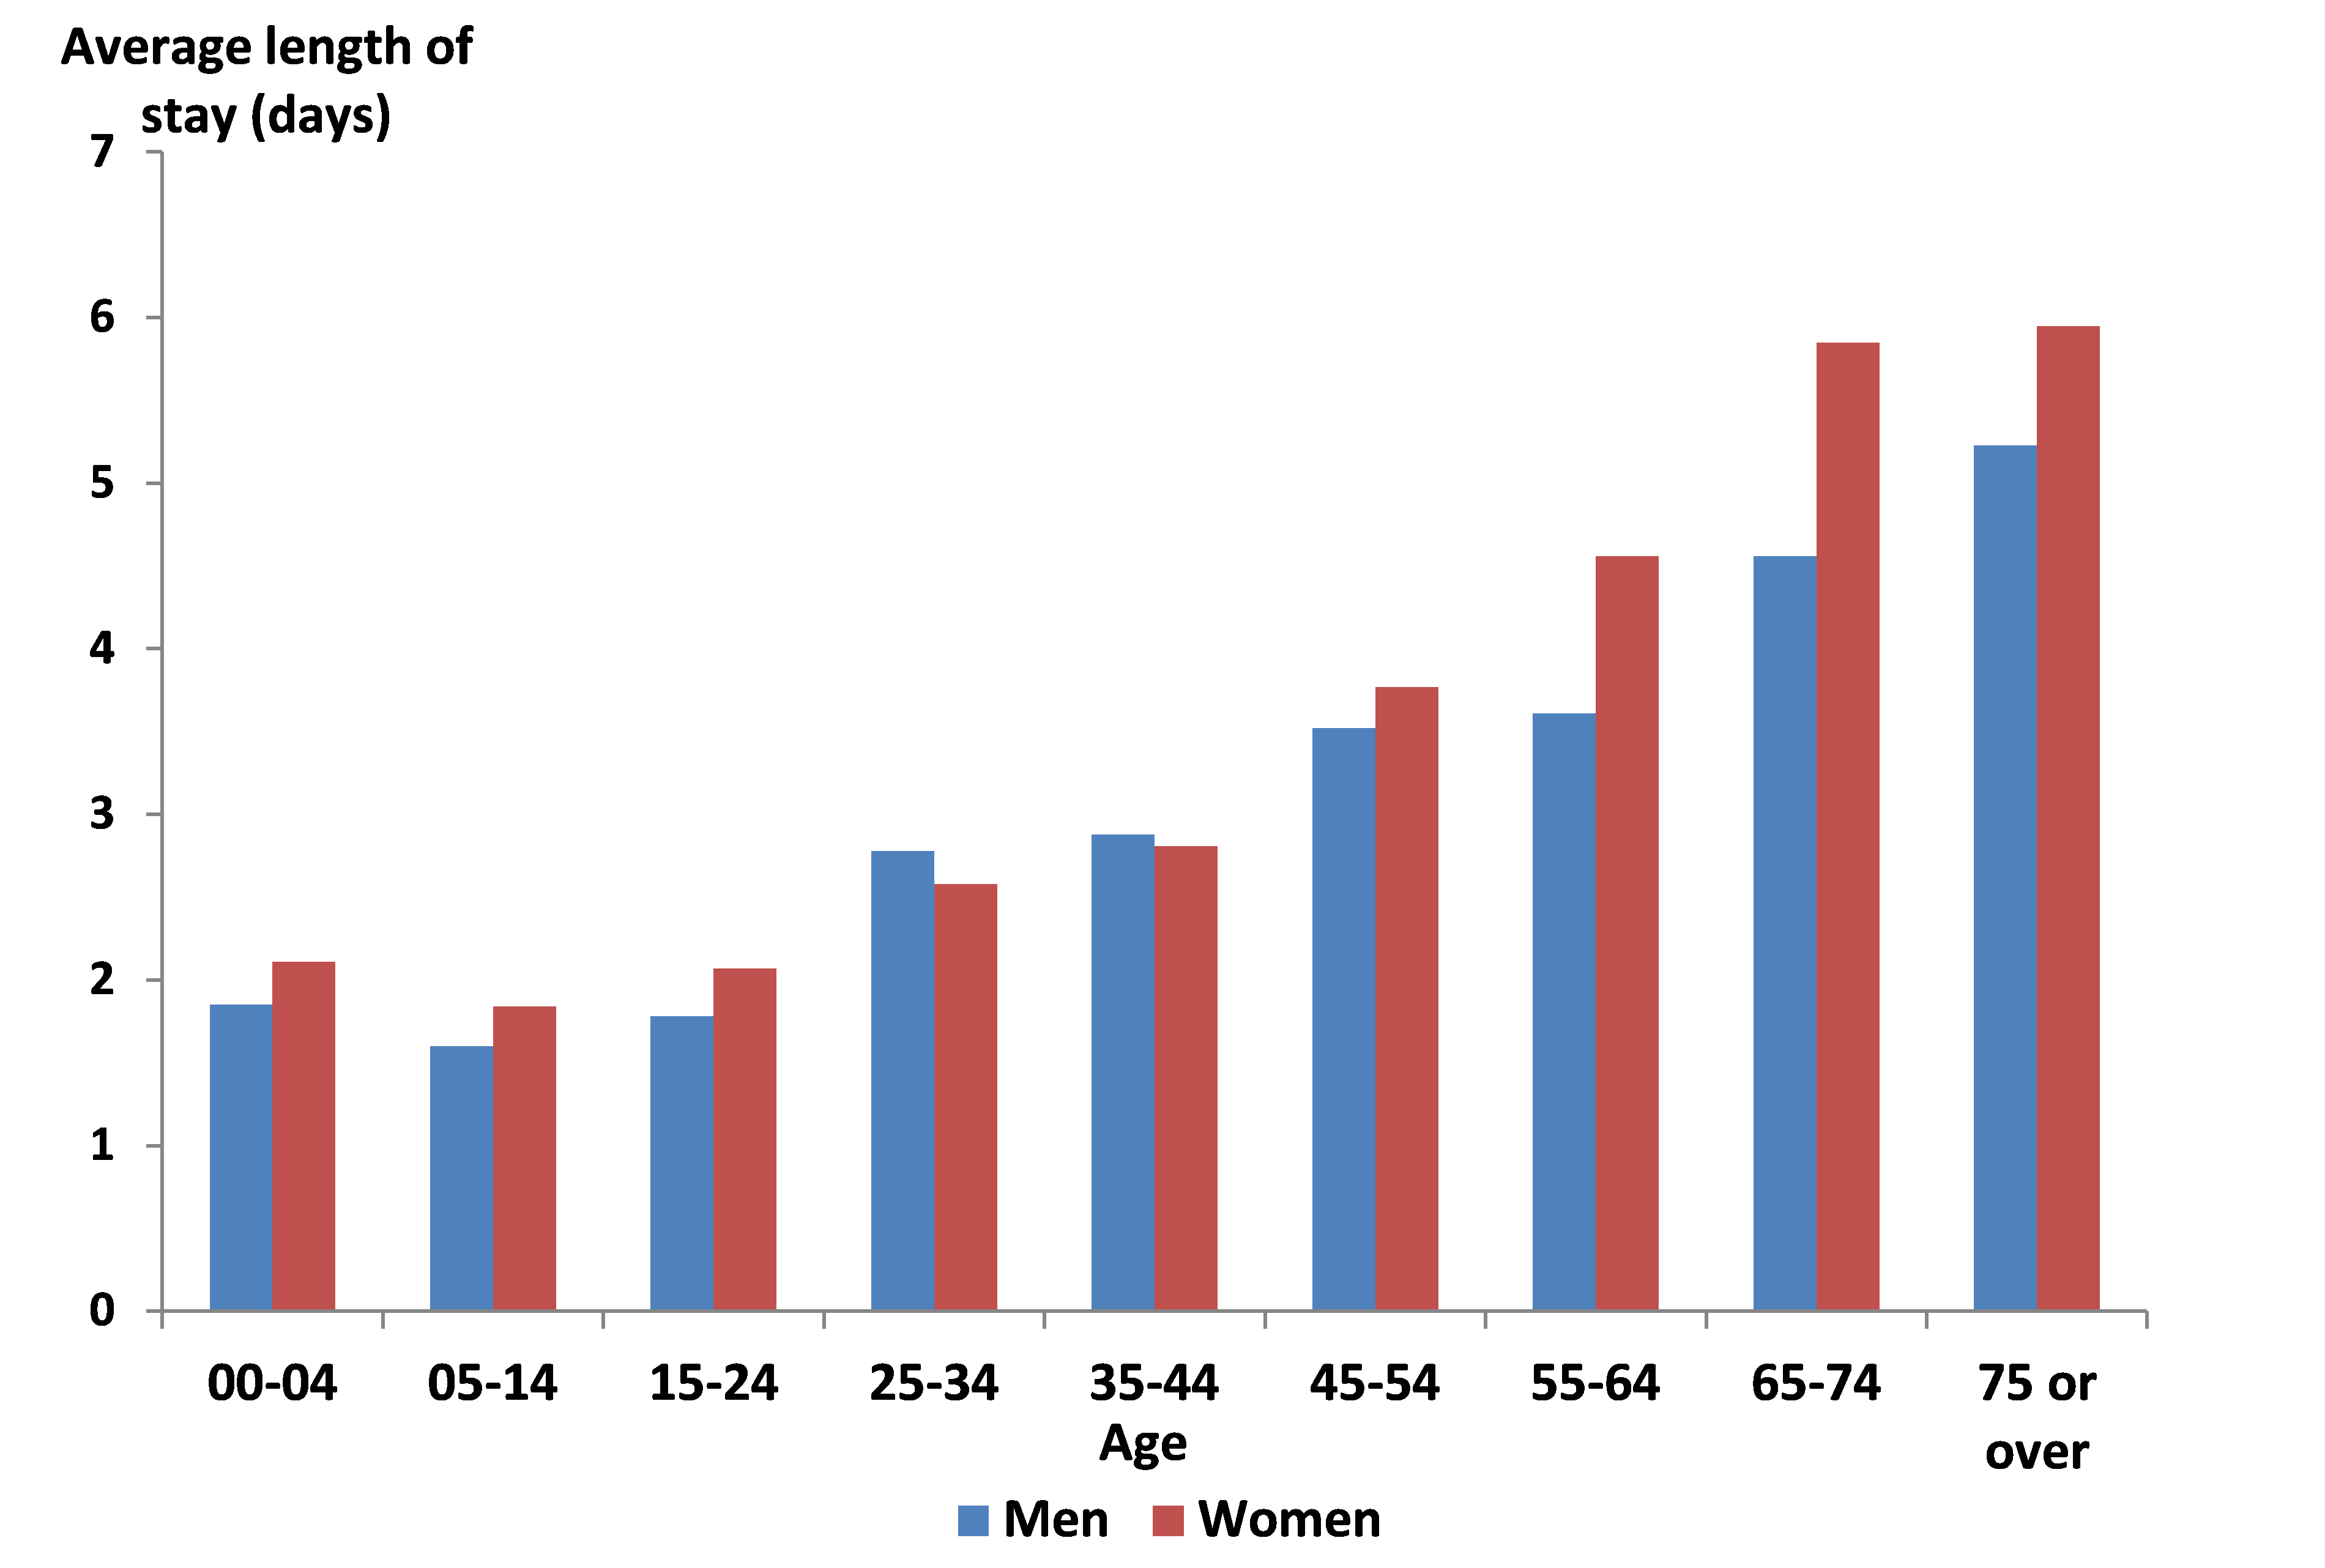 Average length of hospital stay due to asthma in days by age group and sex, 2005 - 2013, Reunion